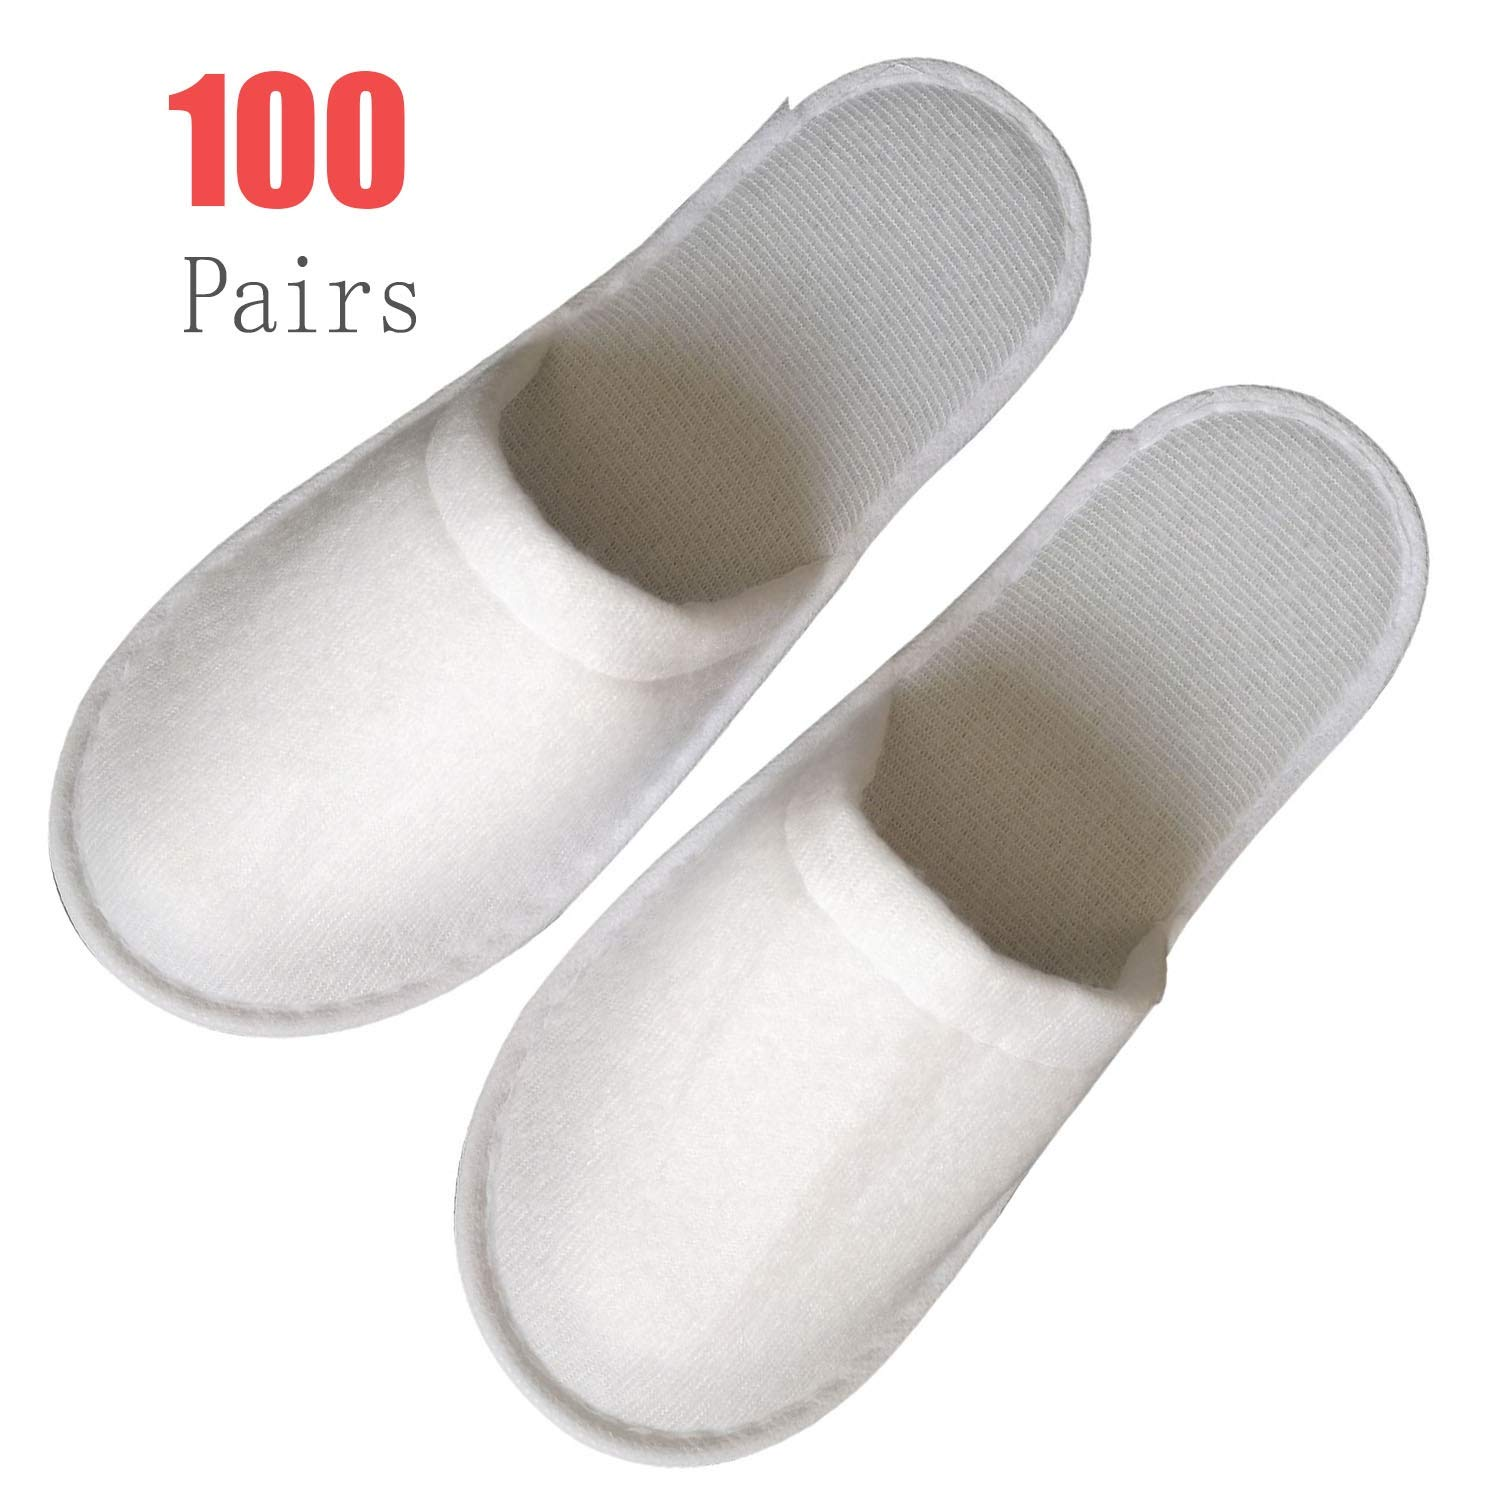 100Pairs Slippers Women and Men Disposable Portable Hotel Disposable Closed Toe Pull Plush Spa Slippers Women's Comfort Slip Waffle Slippers Men Universal Size Spa-